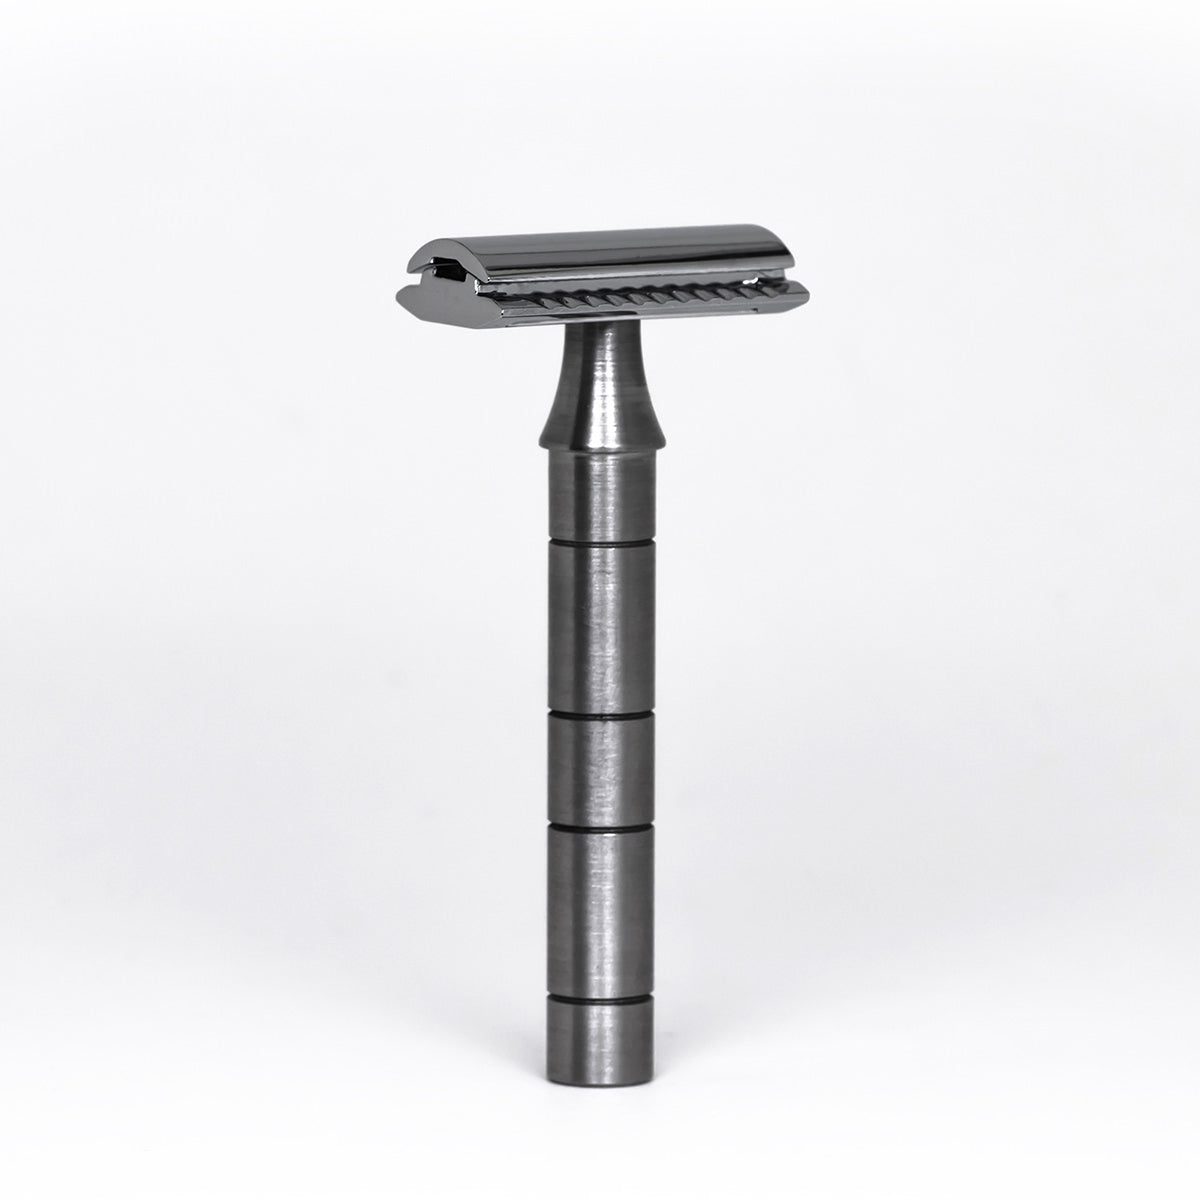 Mark One - Safety Razor from Thomas Clipper